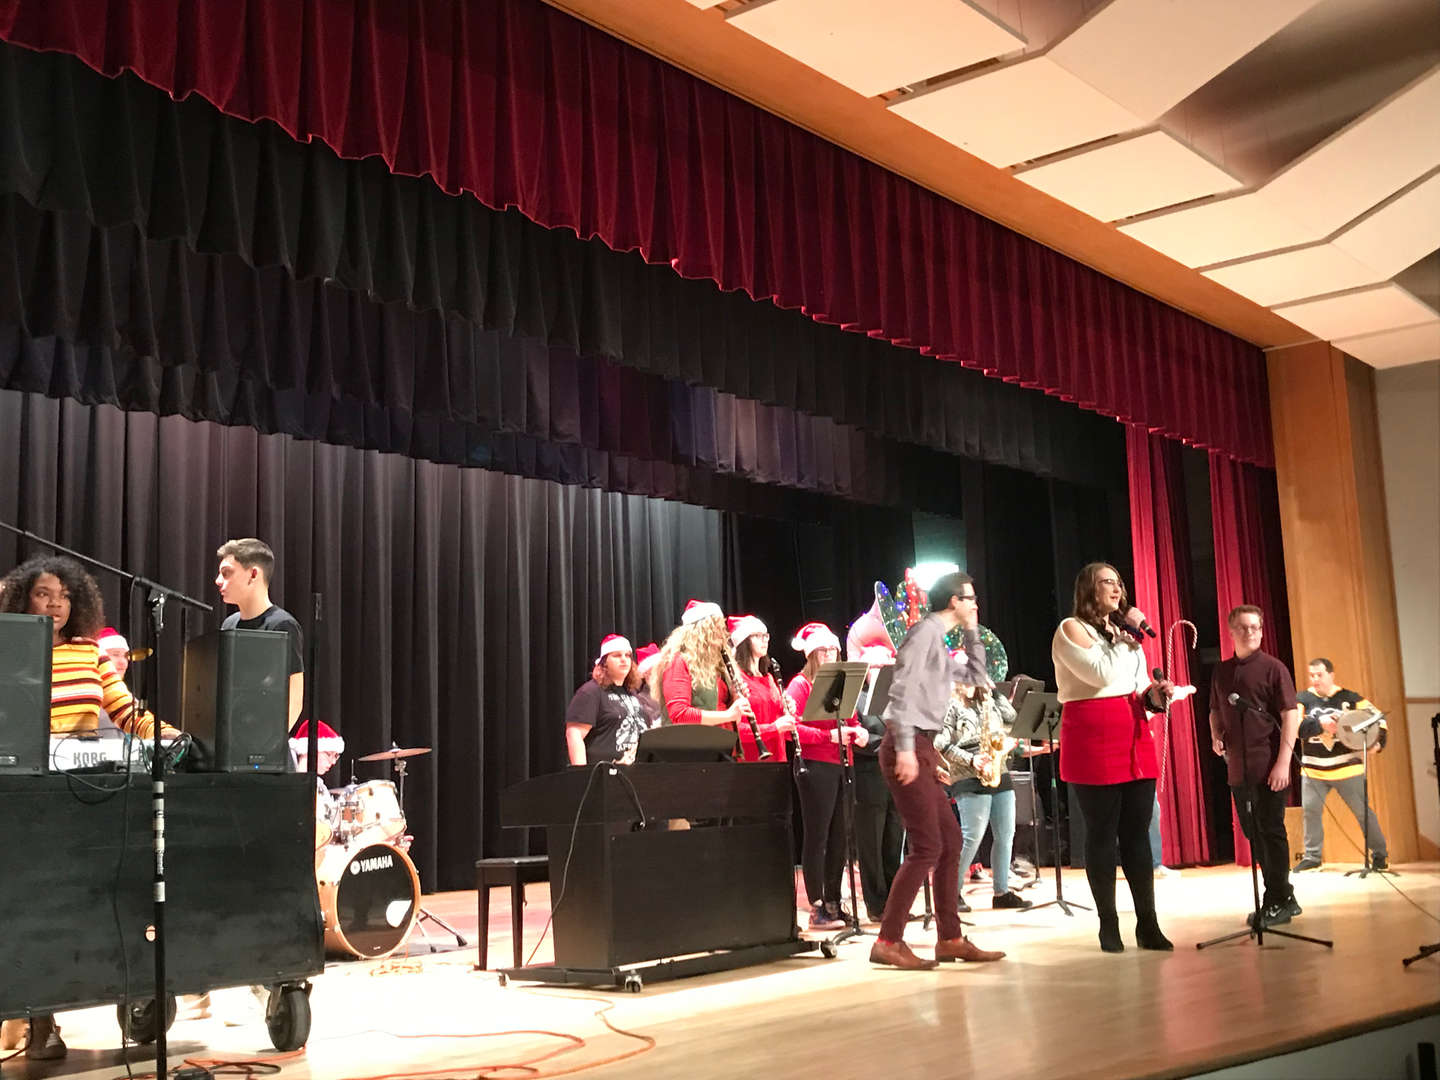 2018 ANNUAL TALENT SHOW AT YHS